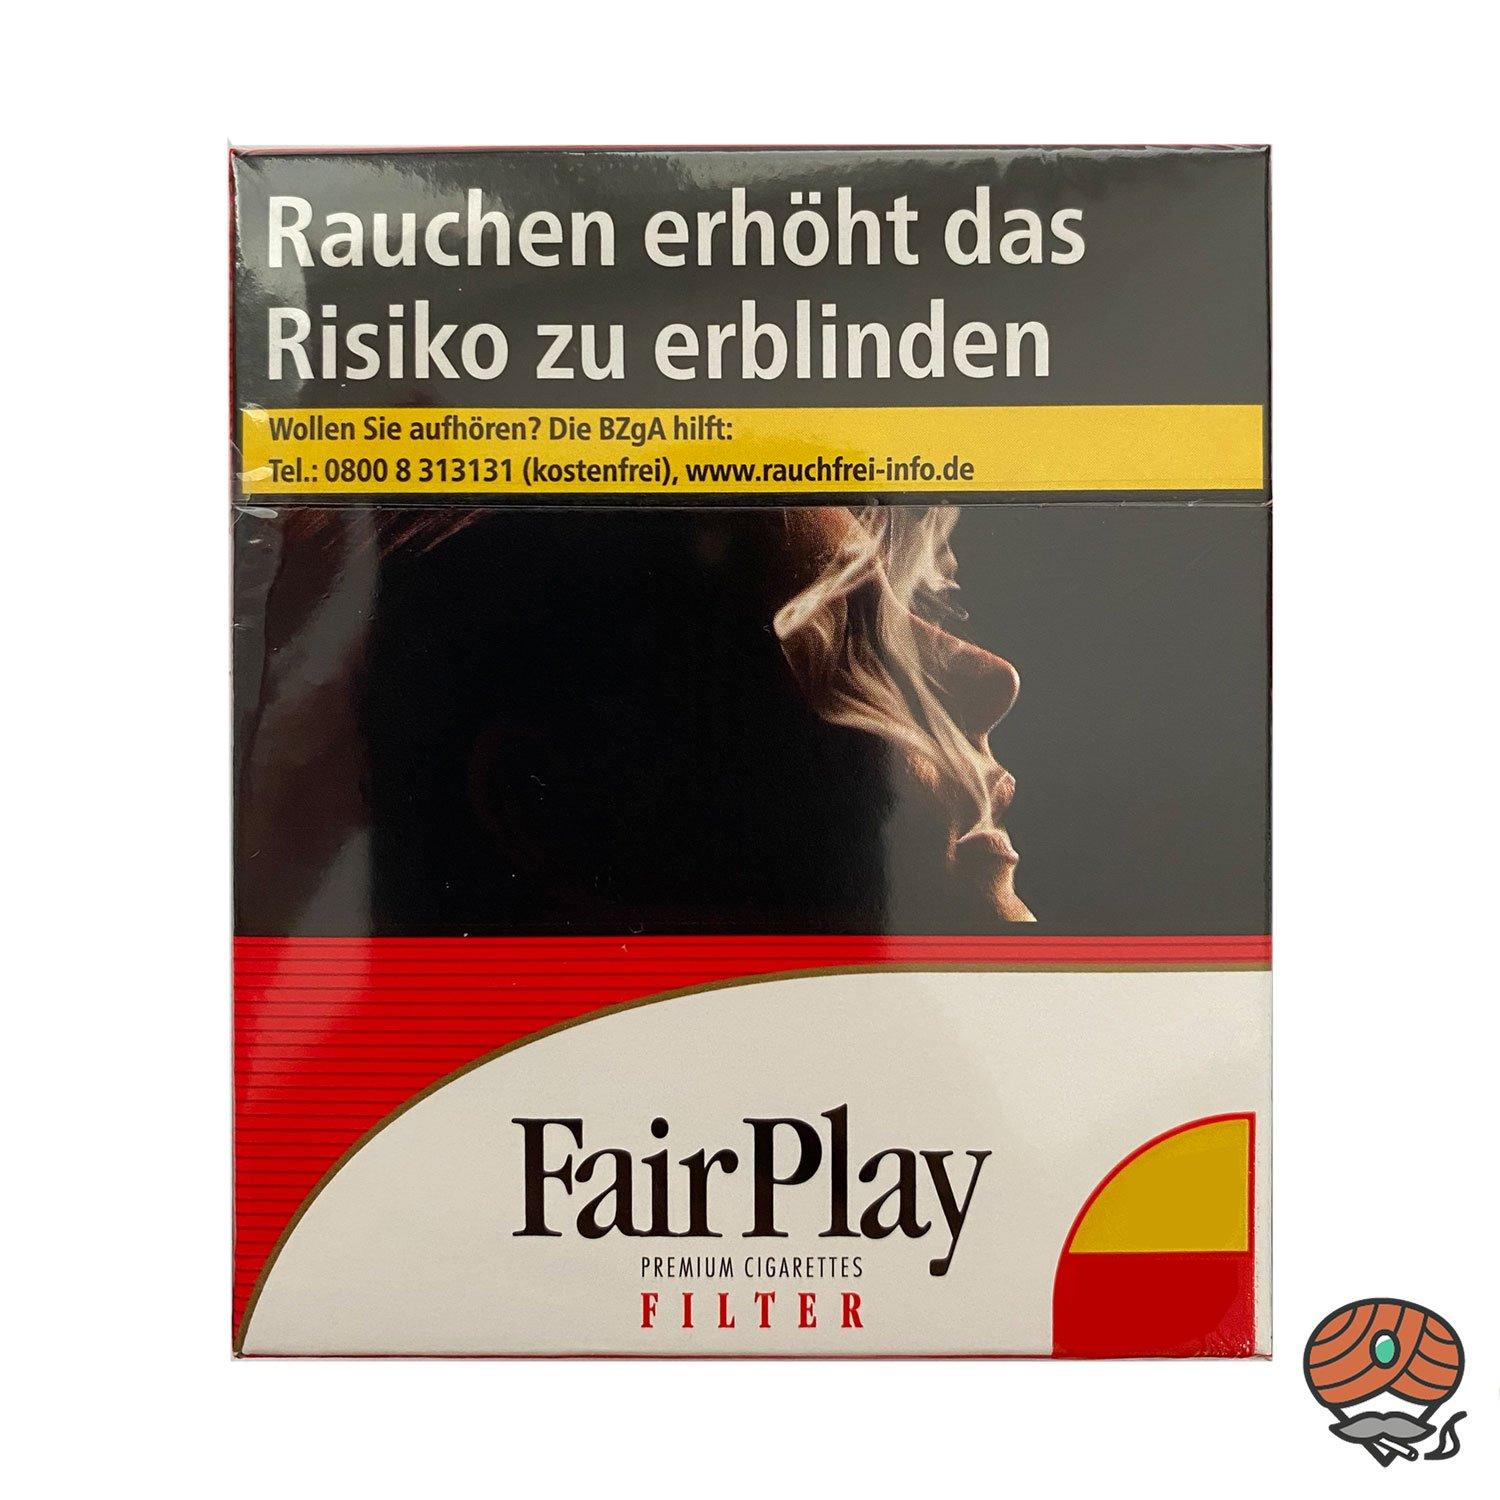 FairPlay Full Flavor Giga Filter Zigaretten 35 Stück